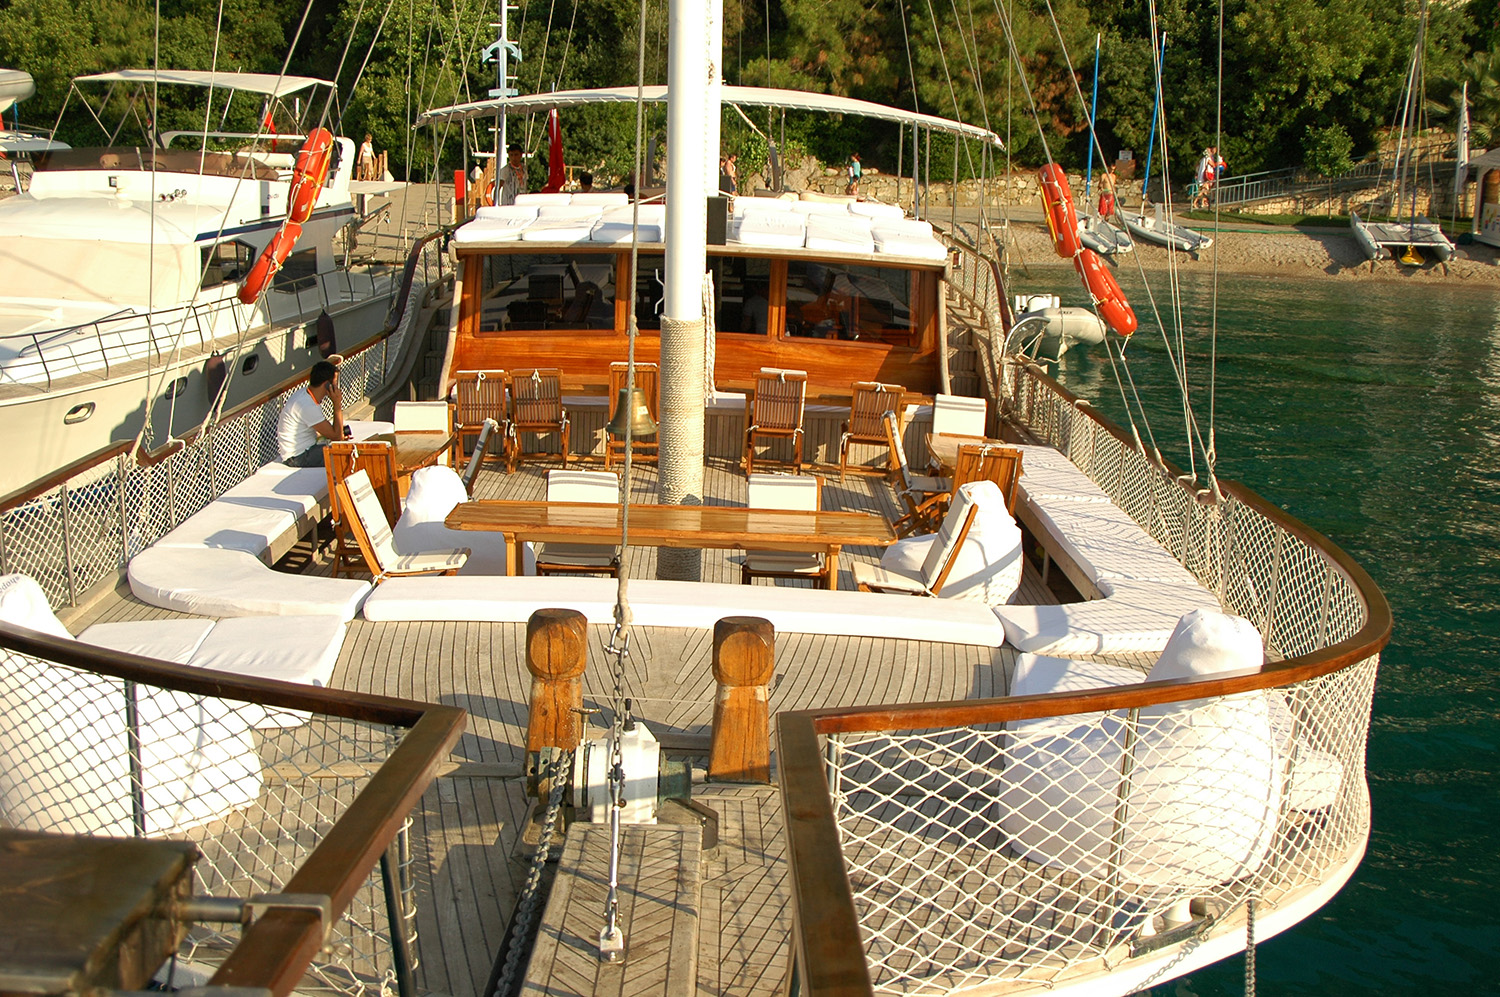 12 Islands Sailing Boat Trip,Light Tours Daily Tours, Discount Tours, Package Tours 424